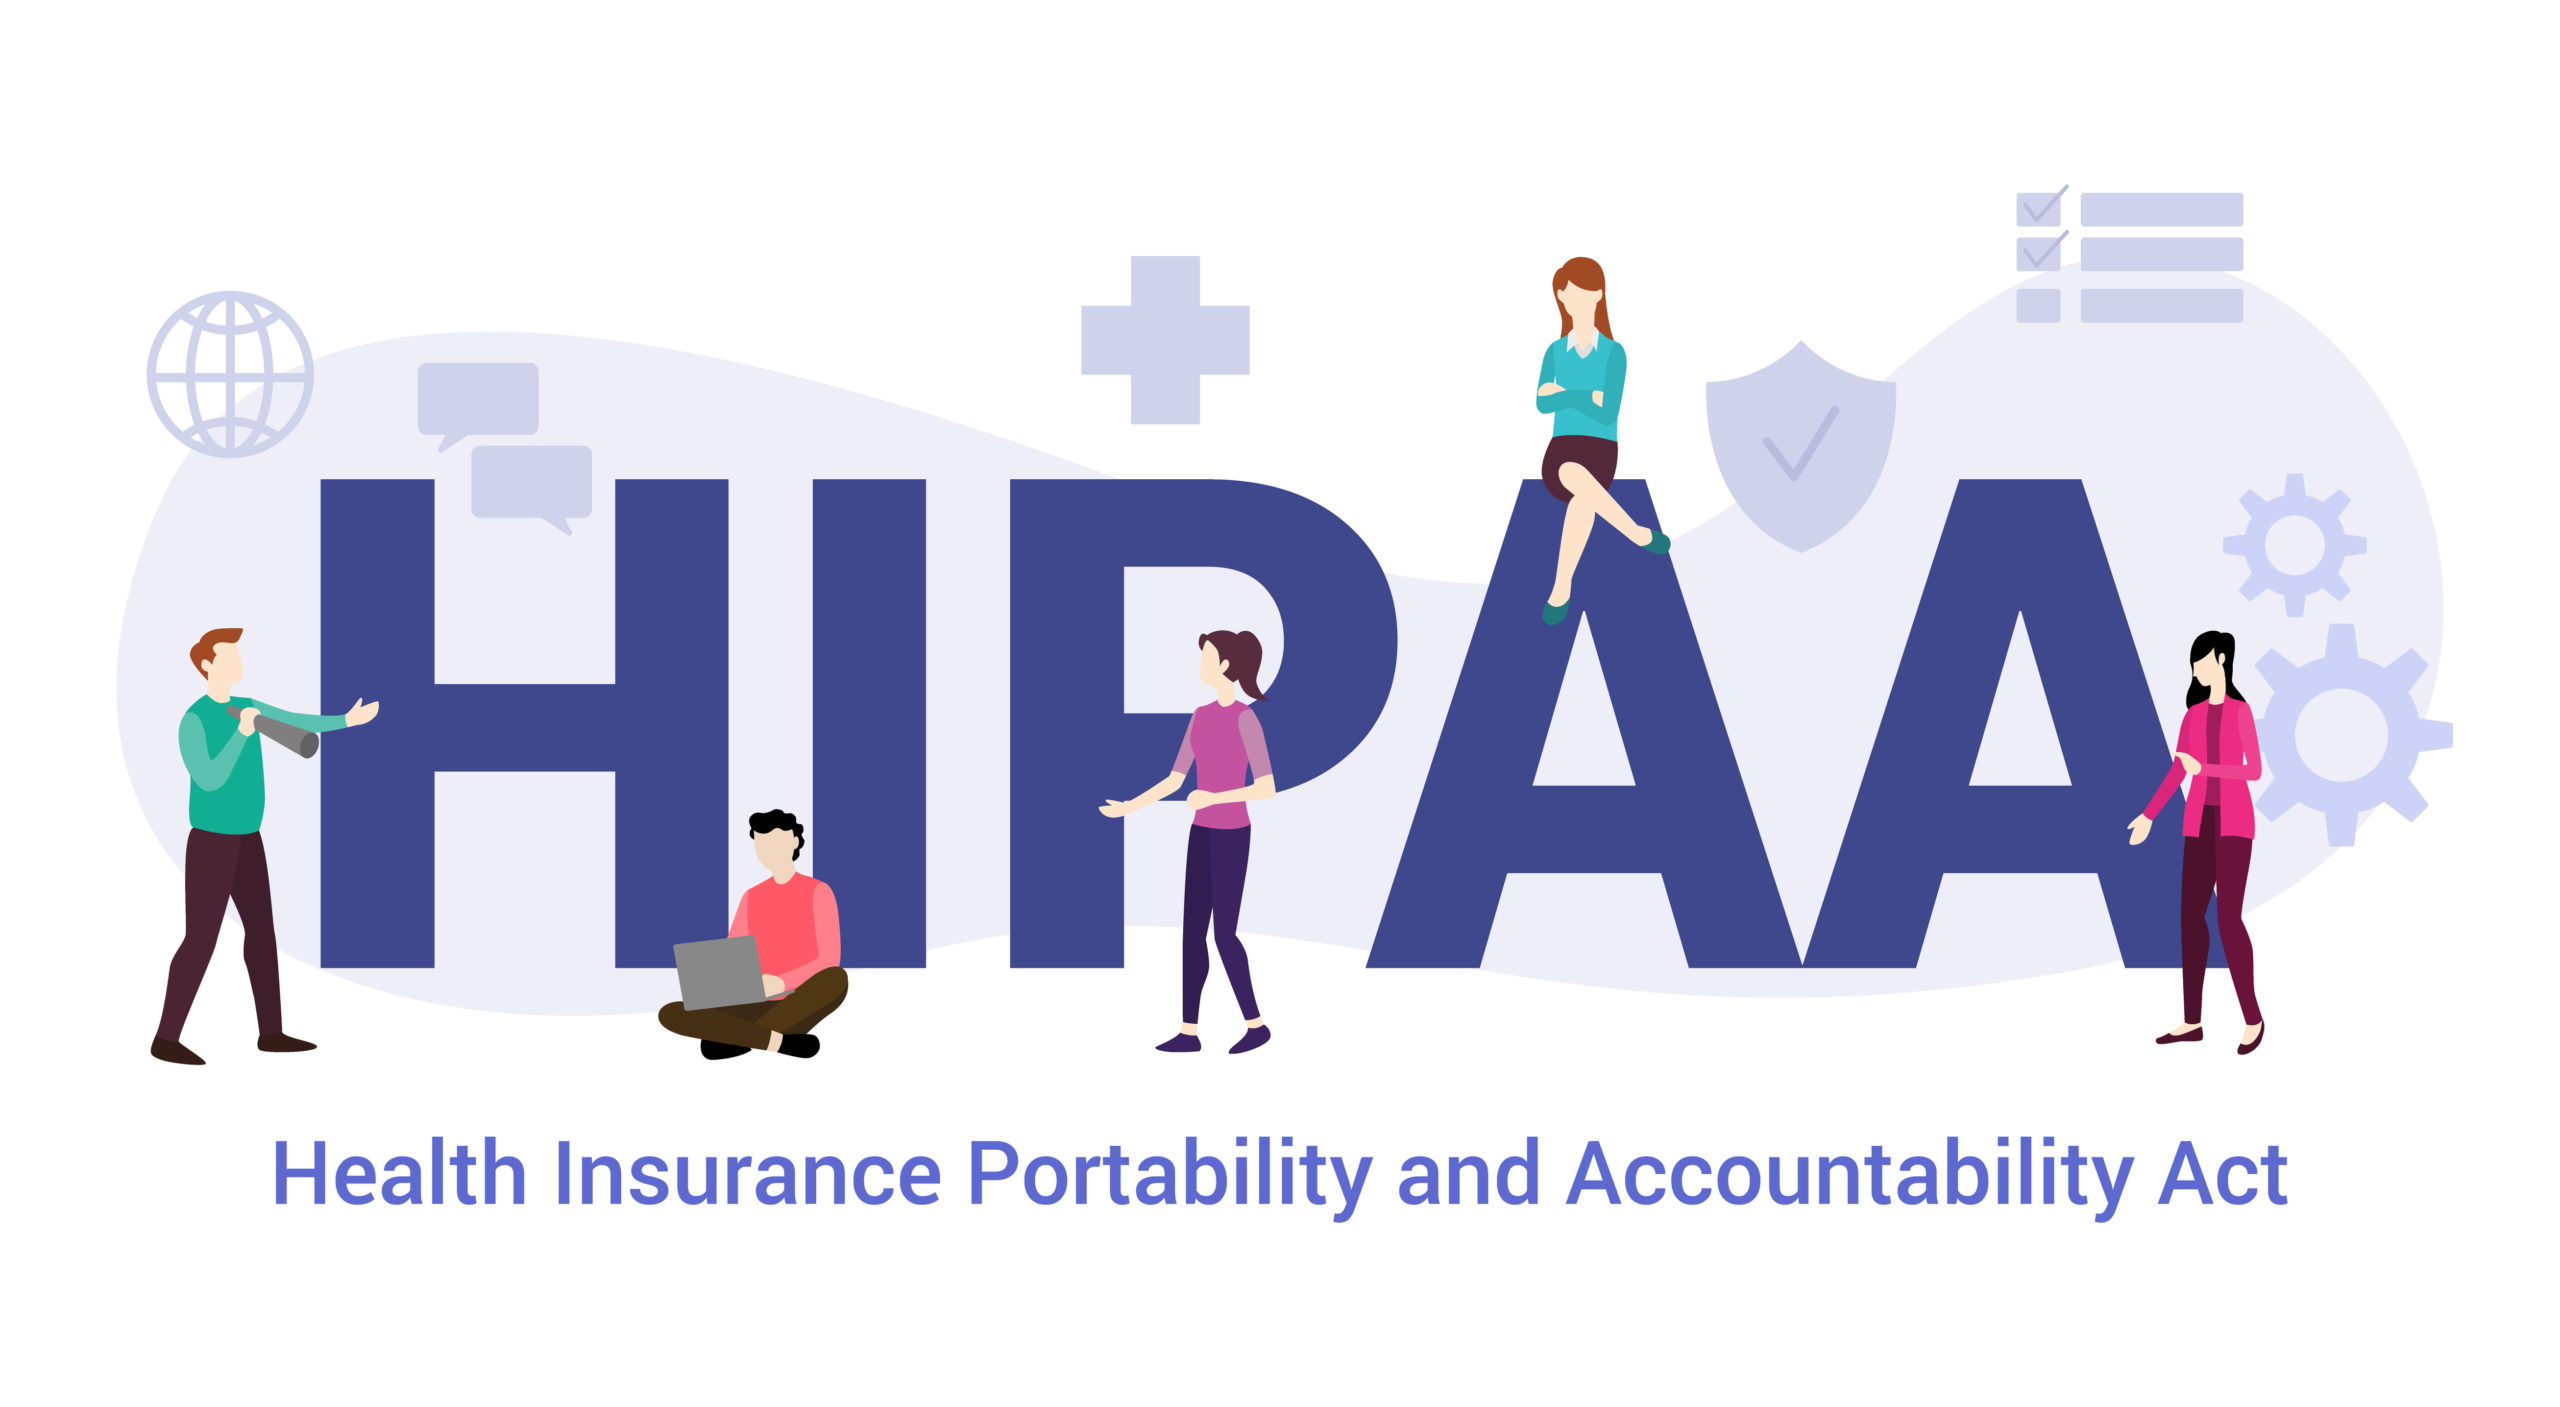 Hipaa Health Insurance Portability And Accountability Act Concept With Big Word Or Text And Team People With Modern Flat Style Vector